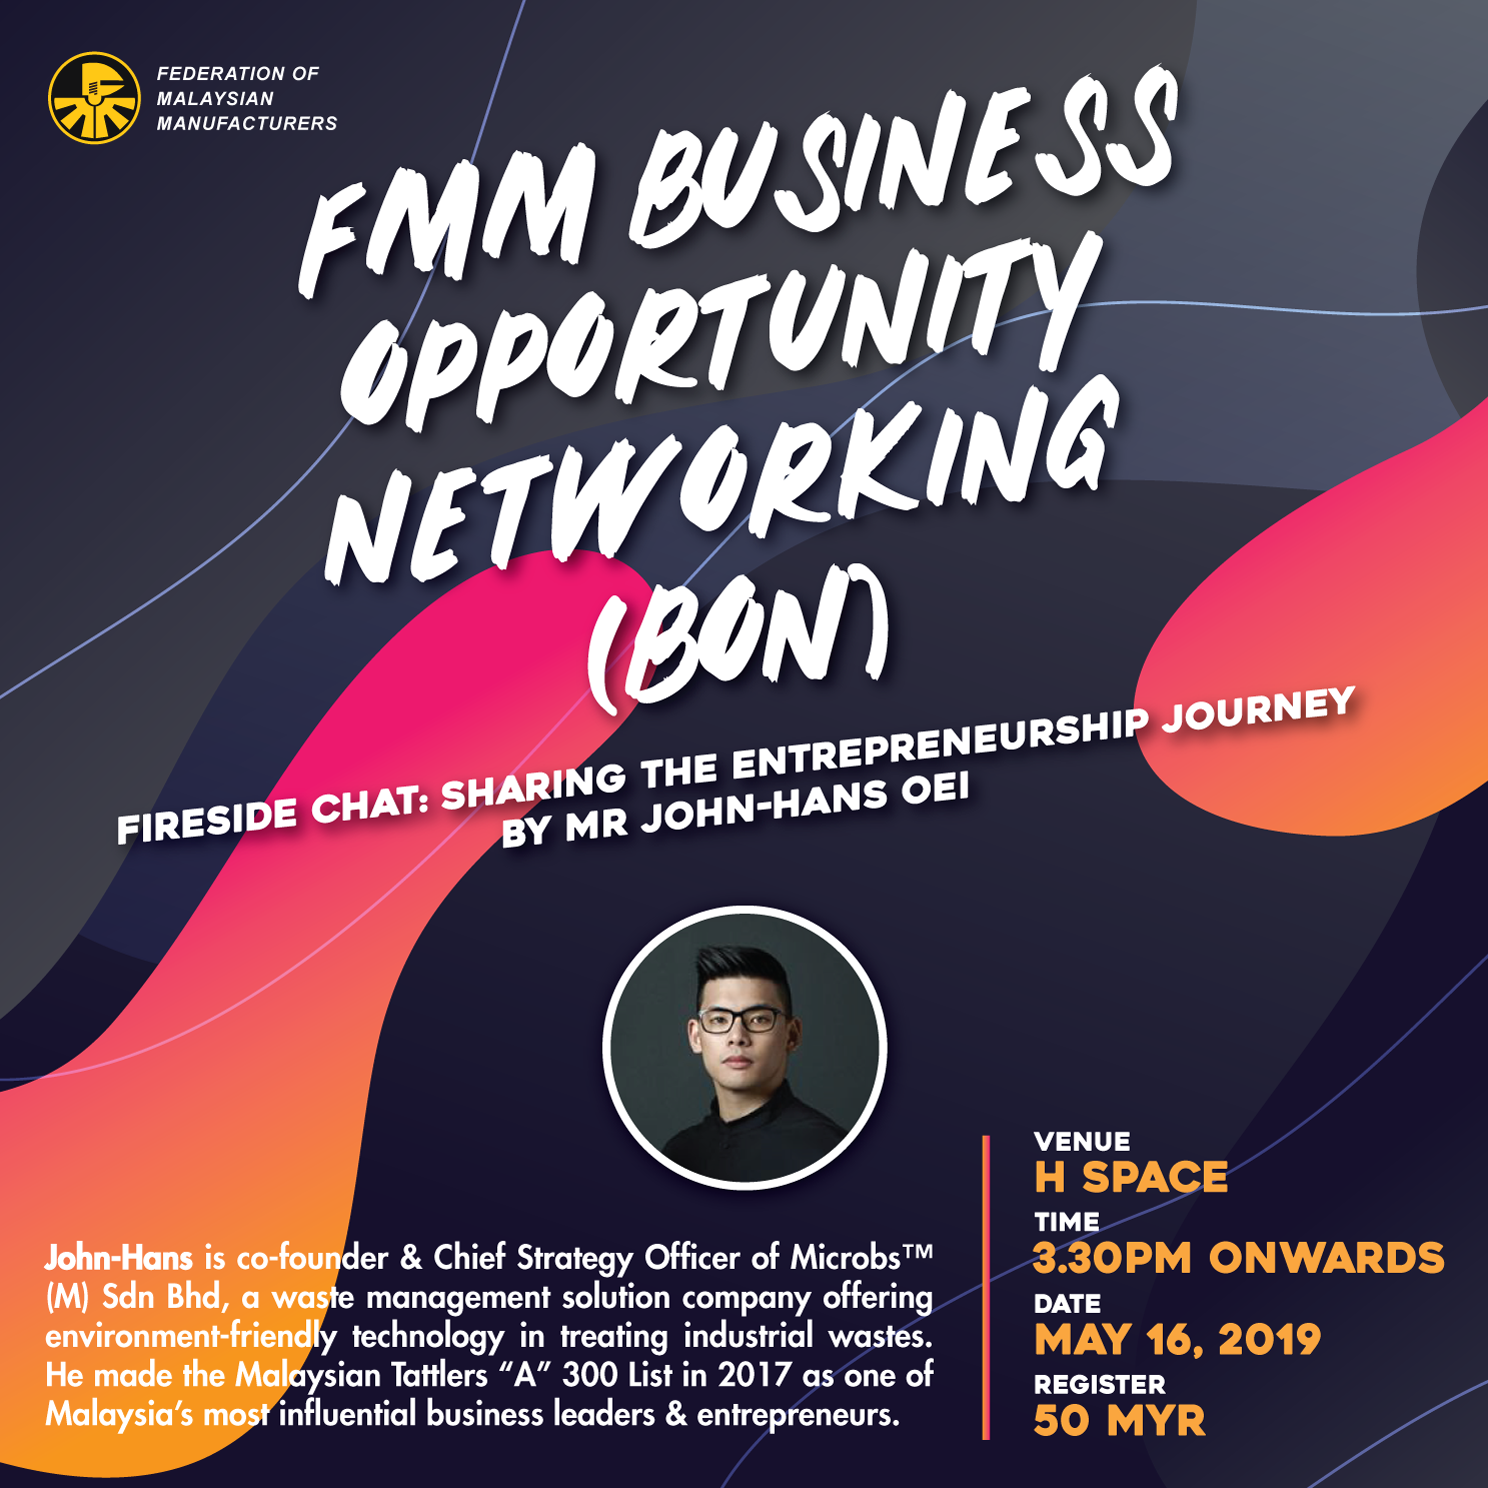 FMM Selangor Business Opportunities Networking